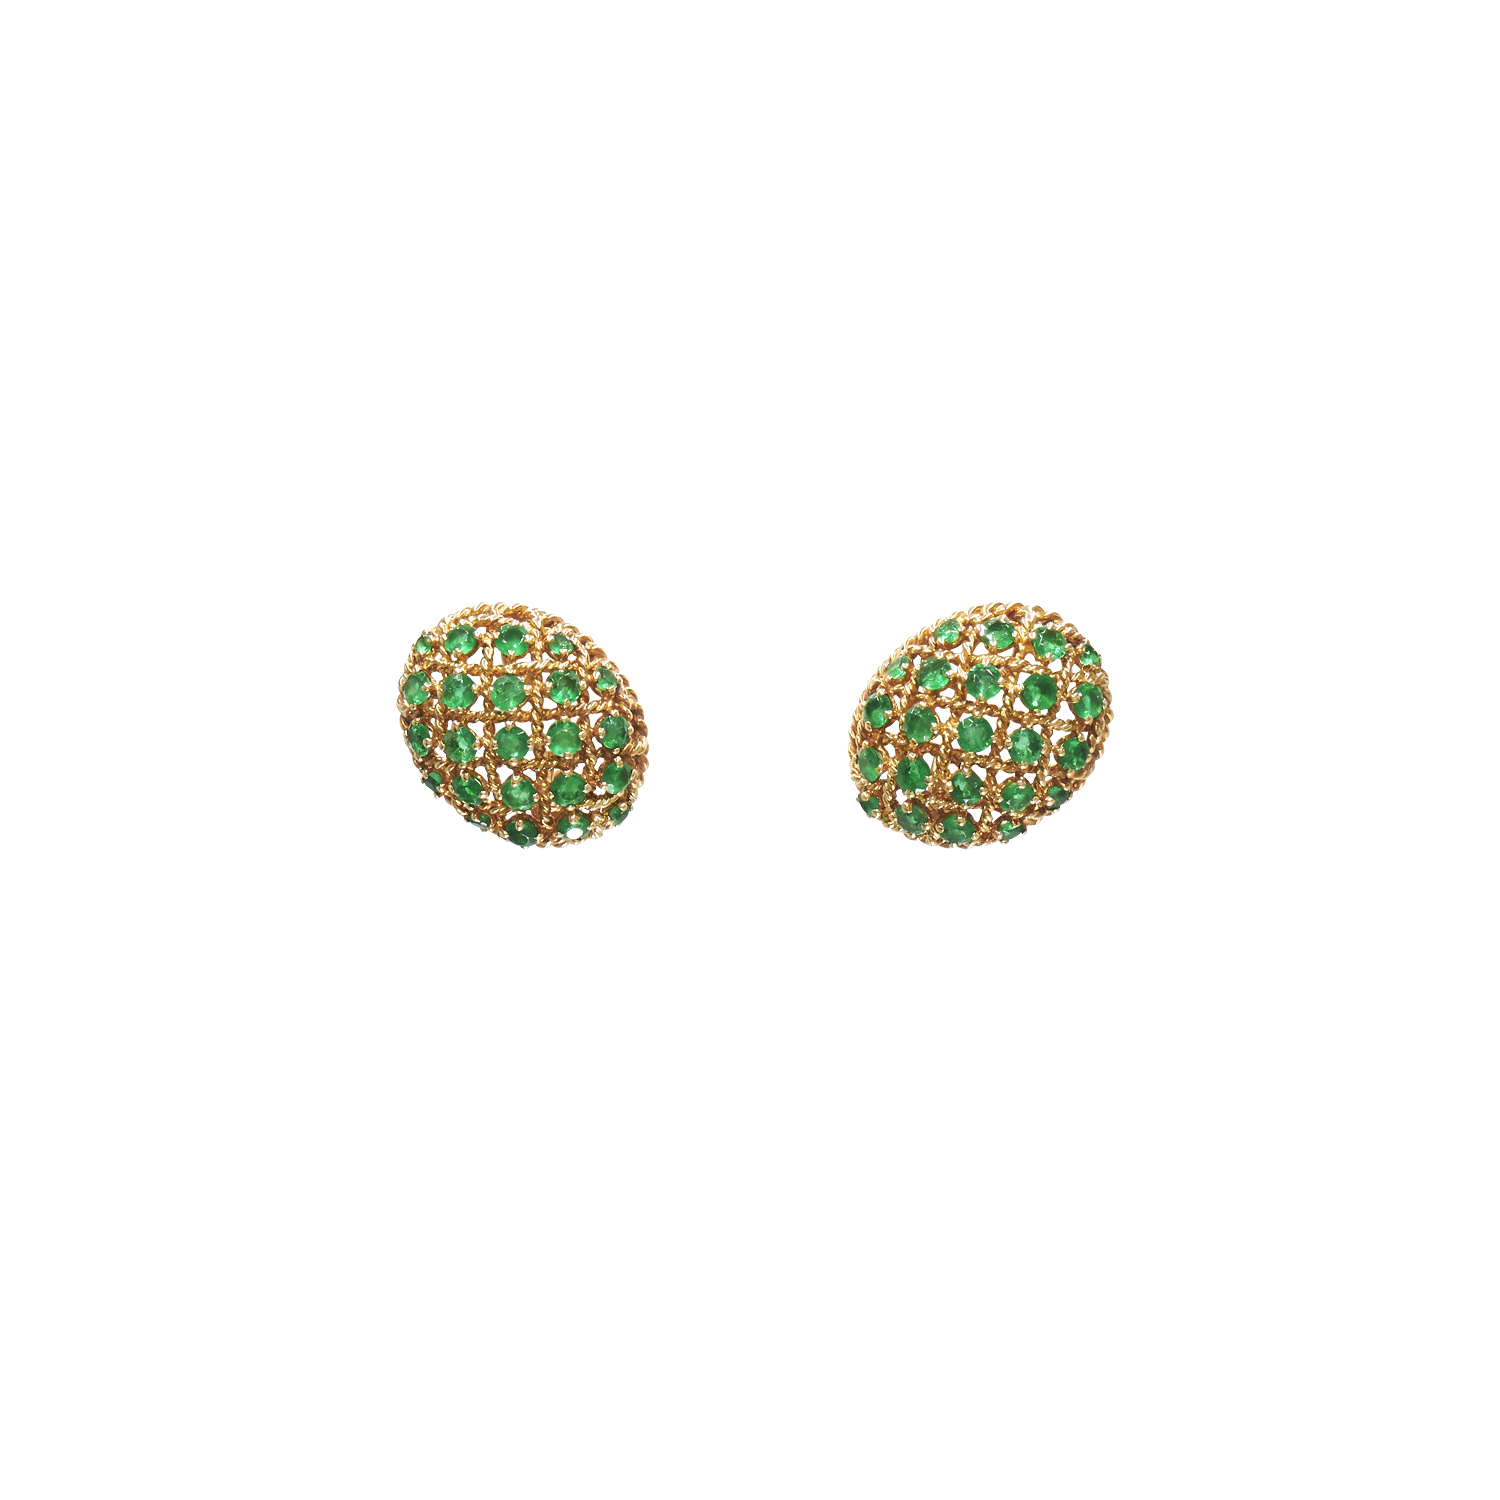 Yellow Gold and Emerald Egg Earrings by Cartier Paris Style E-34615-FL-0-0